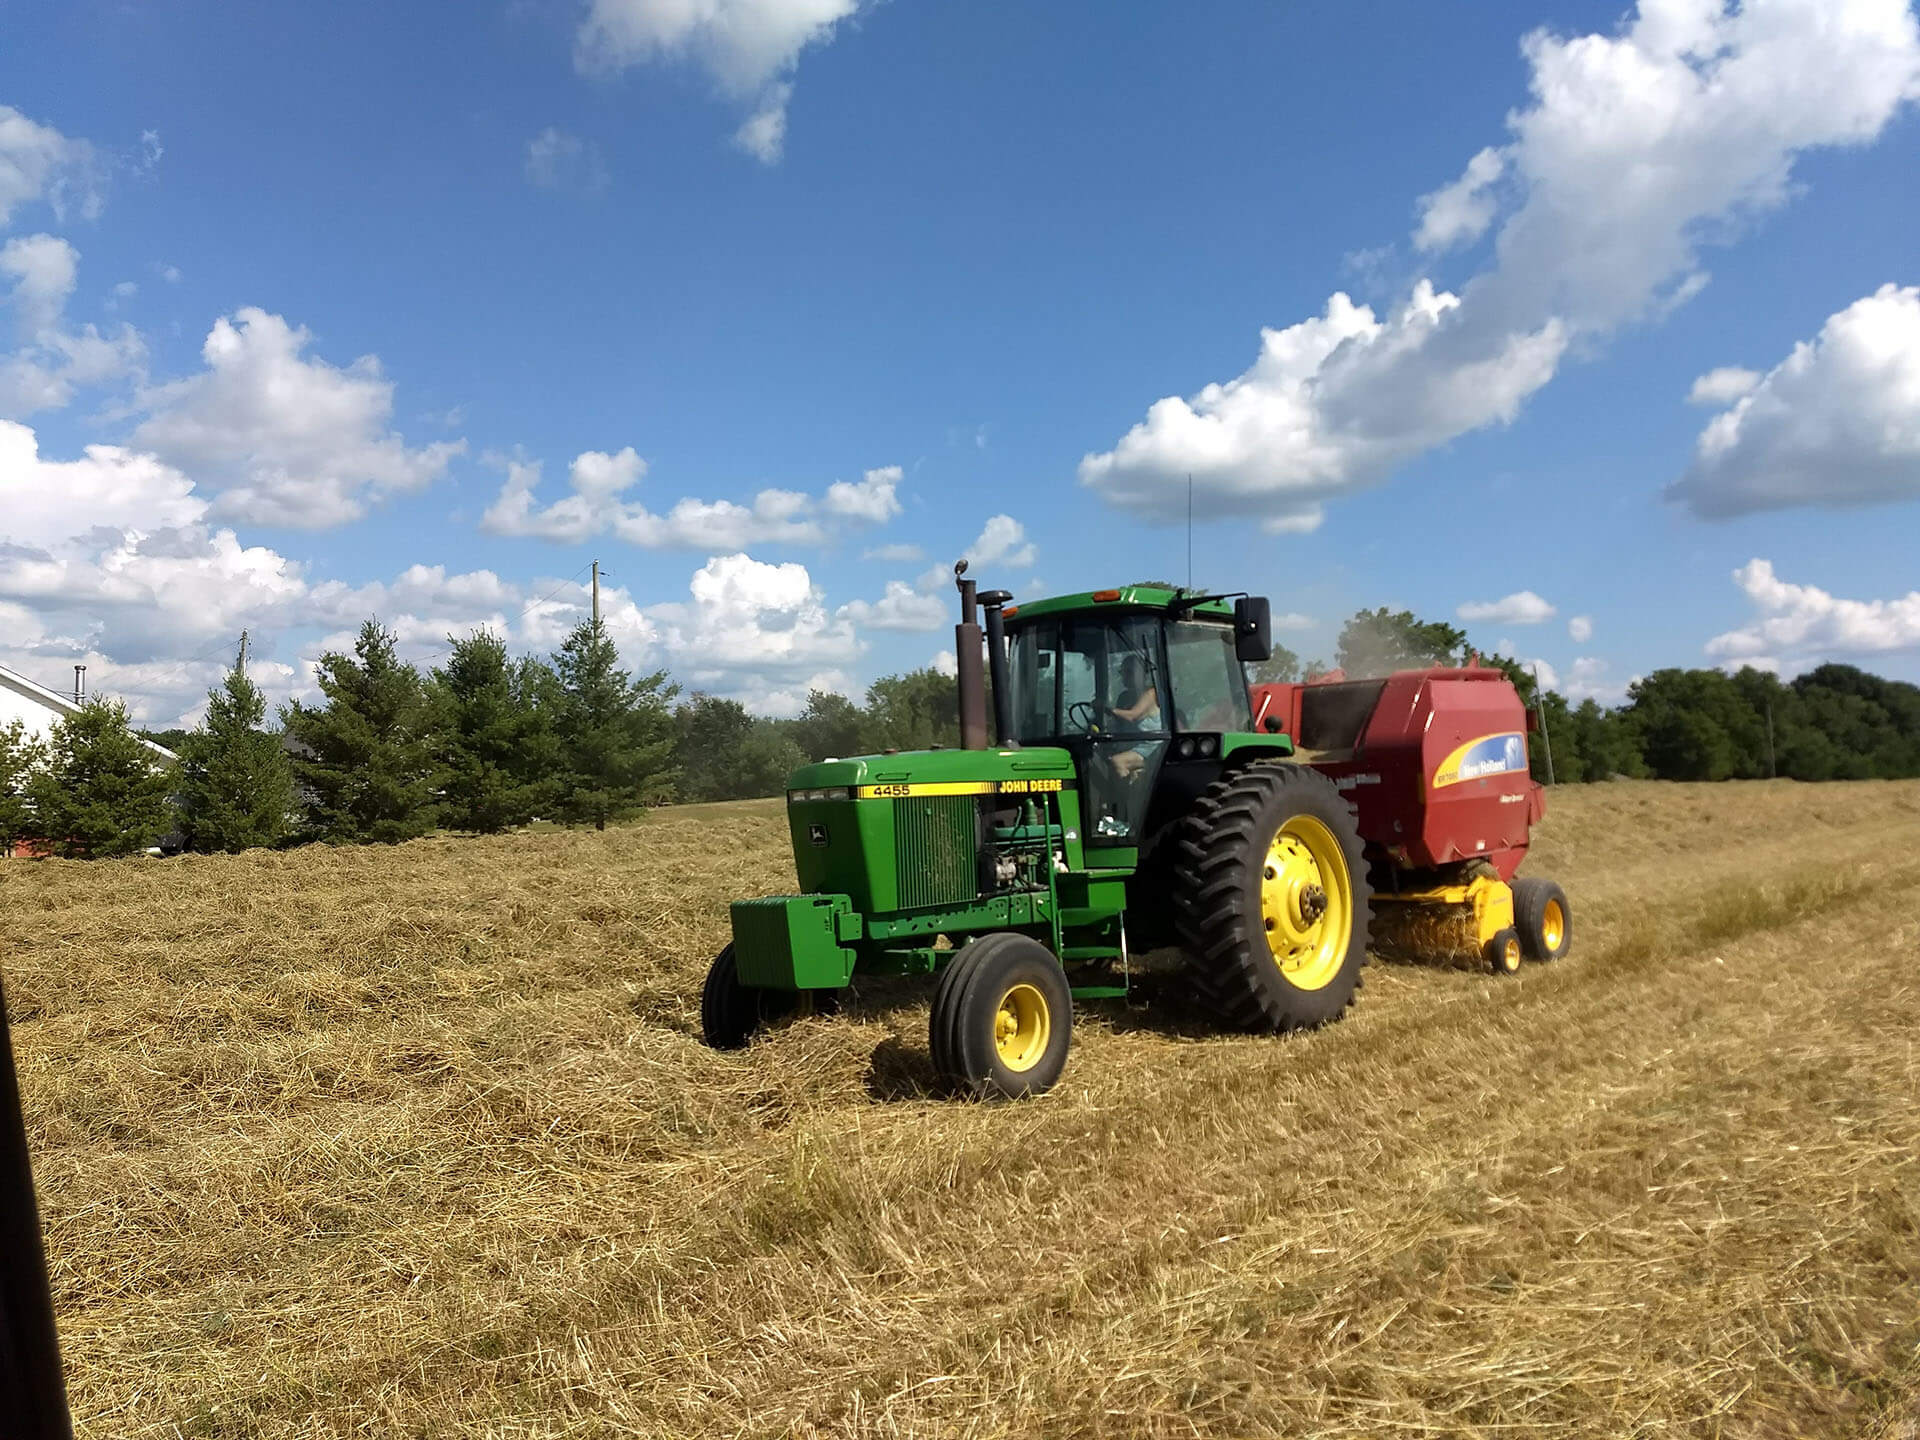 Baler in field ©Murphy Farms 2018